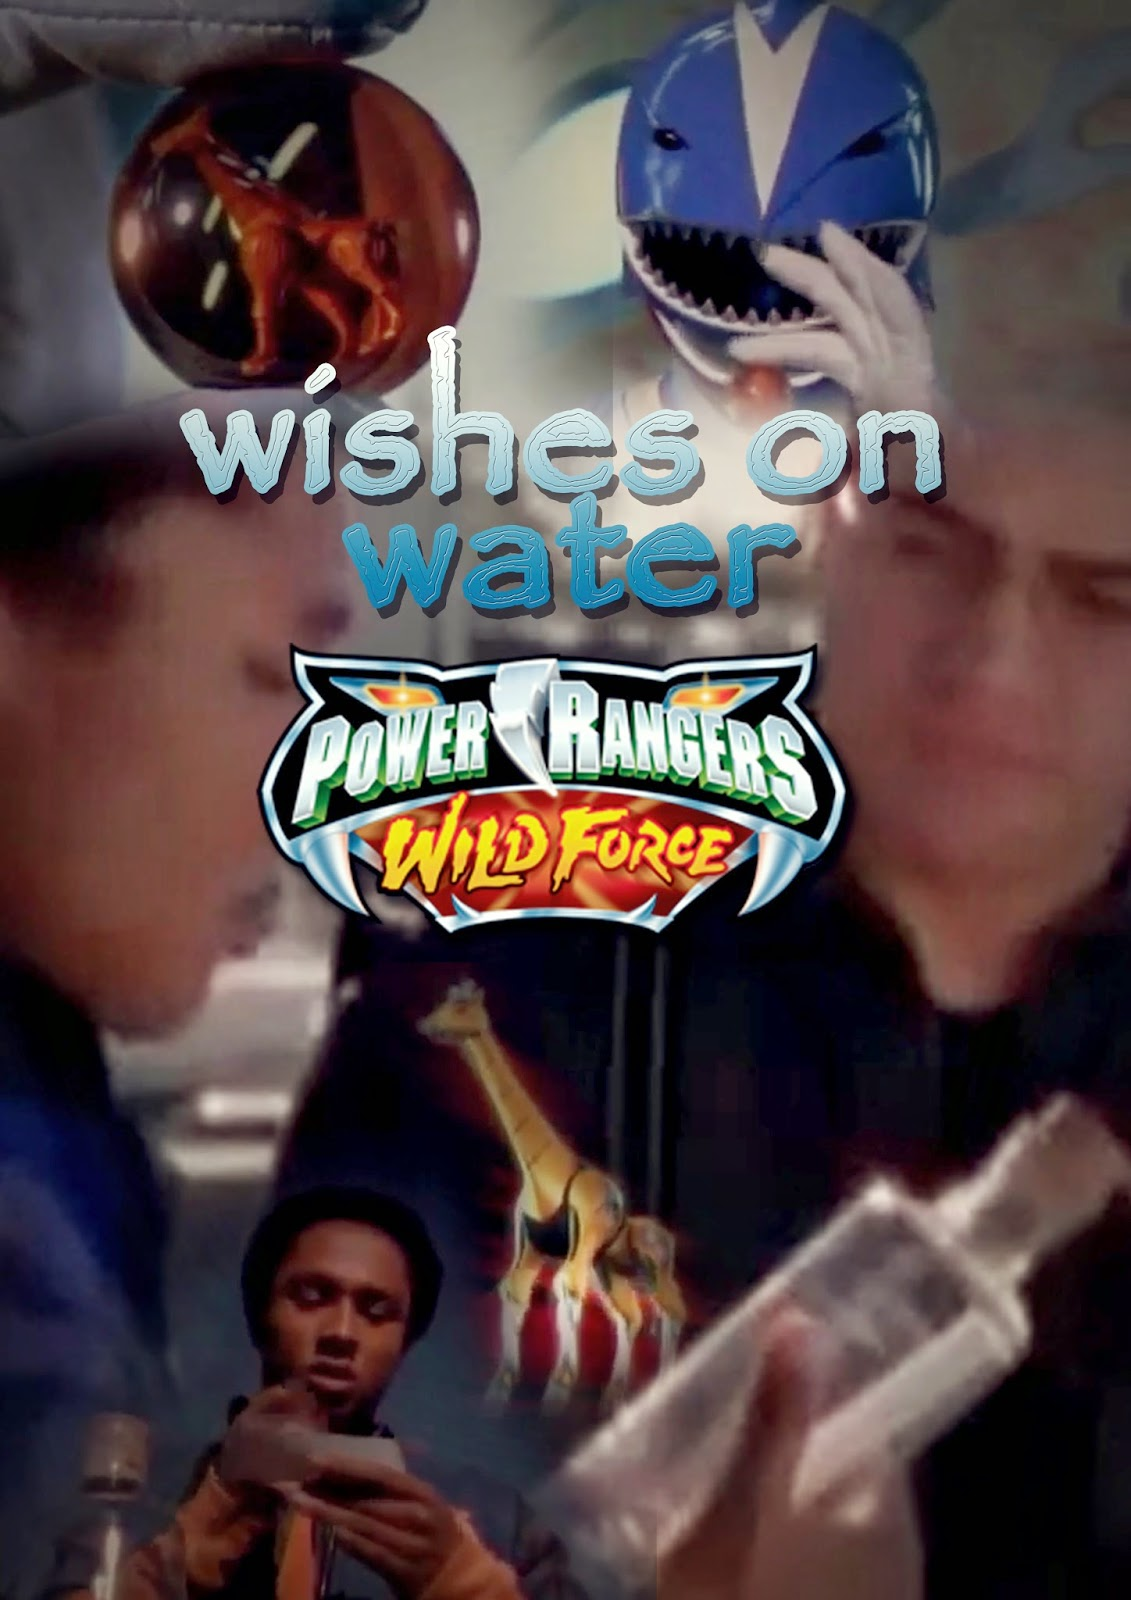 Power rangers wild force episodes wikipedia - Ring the bell